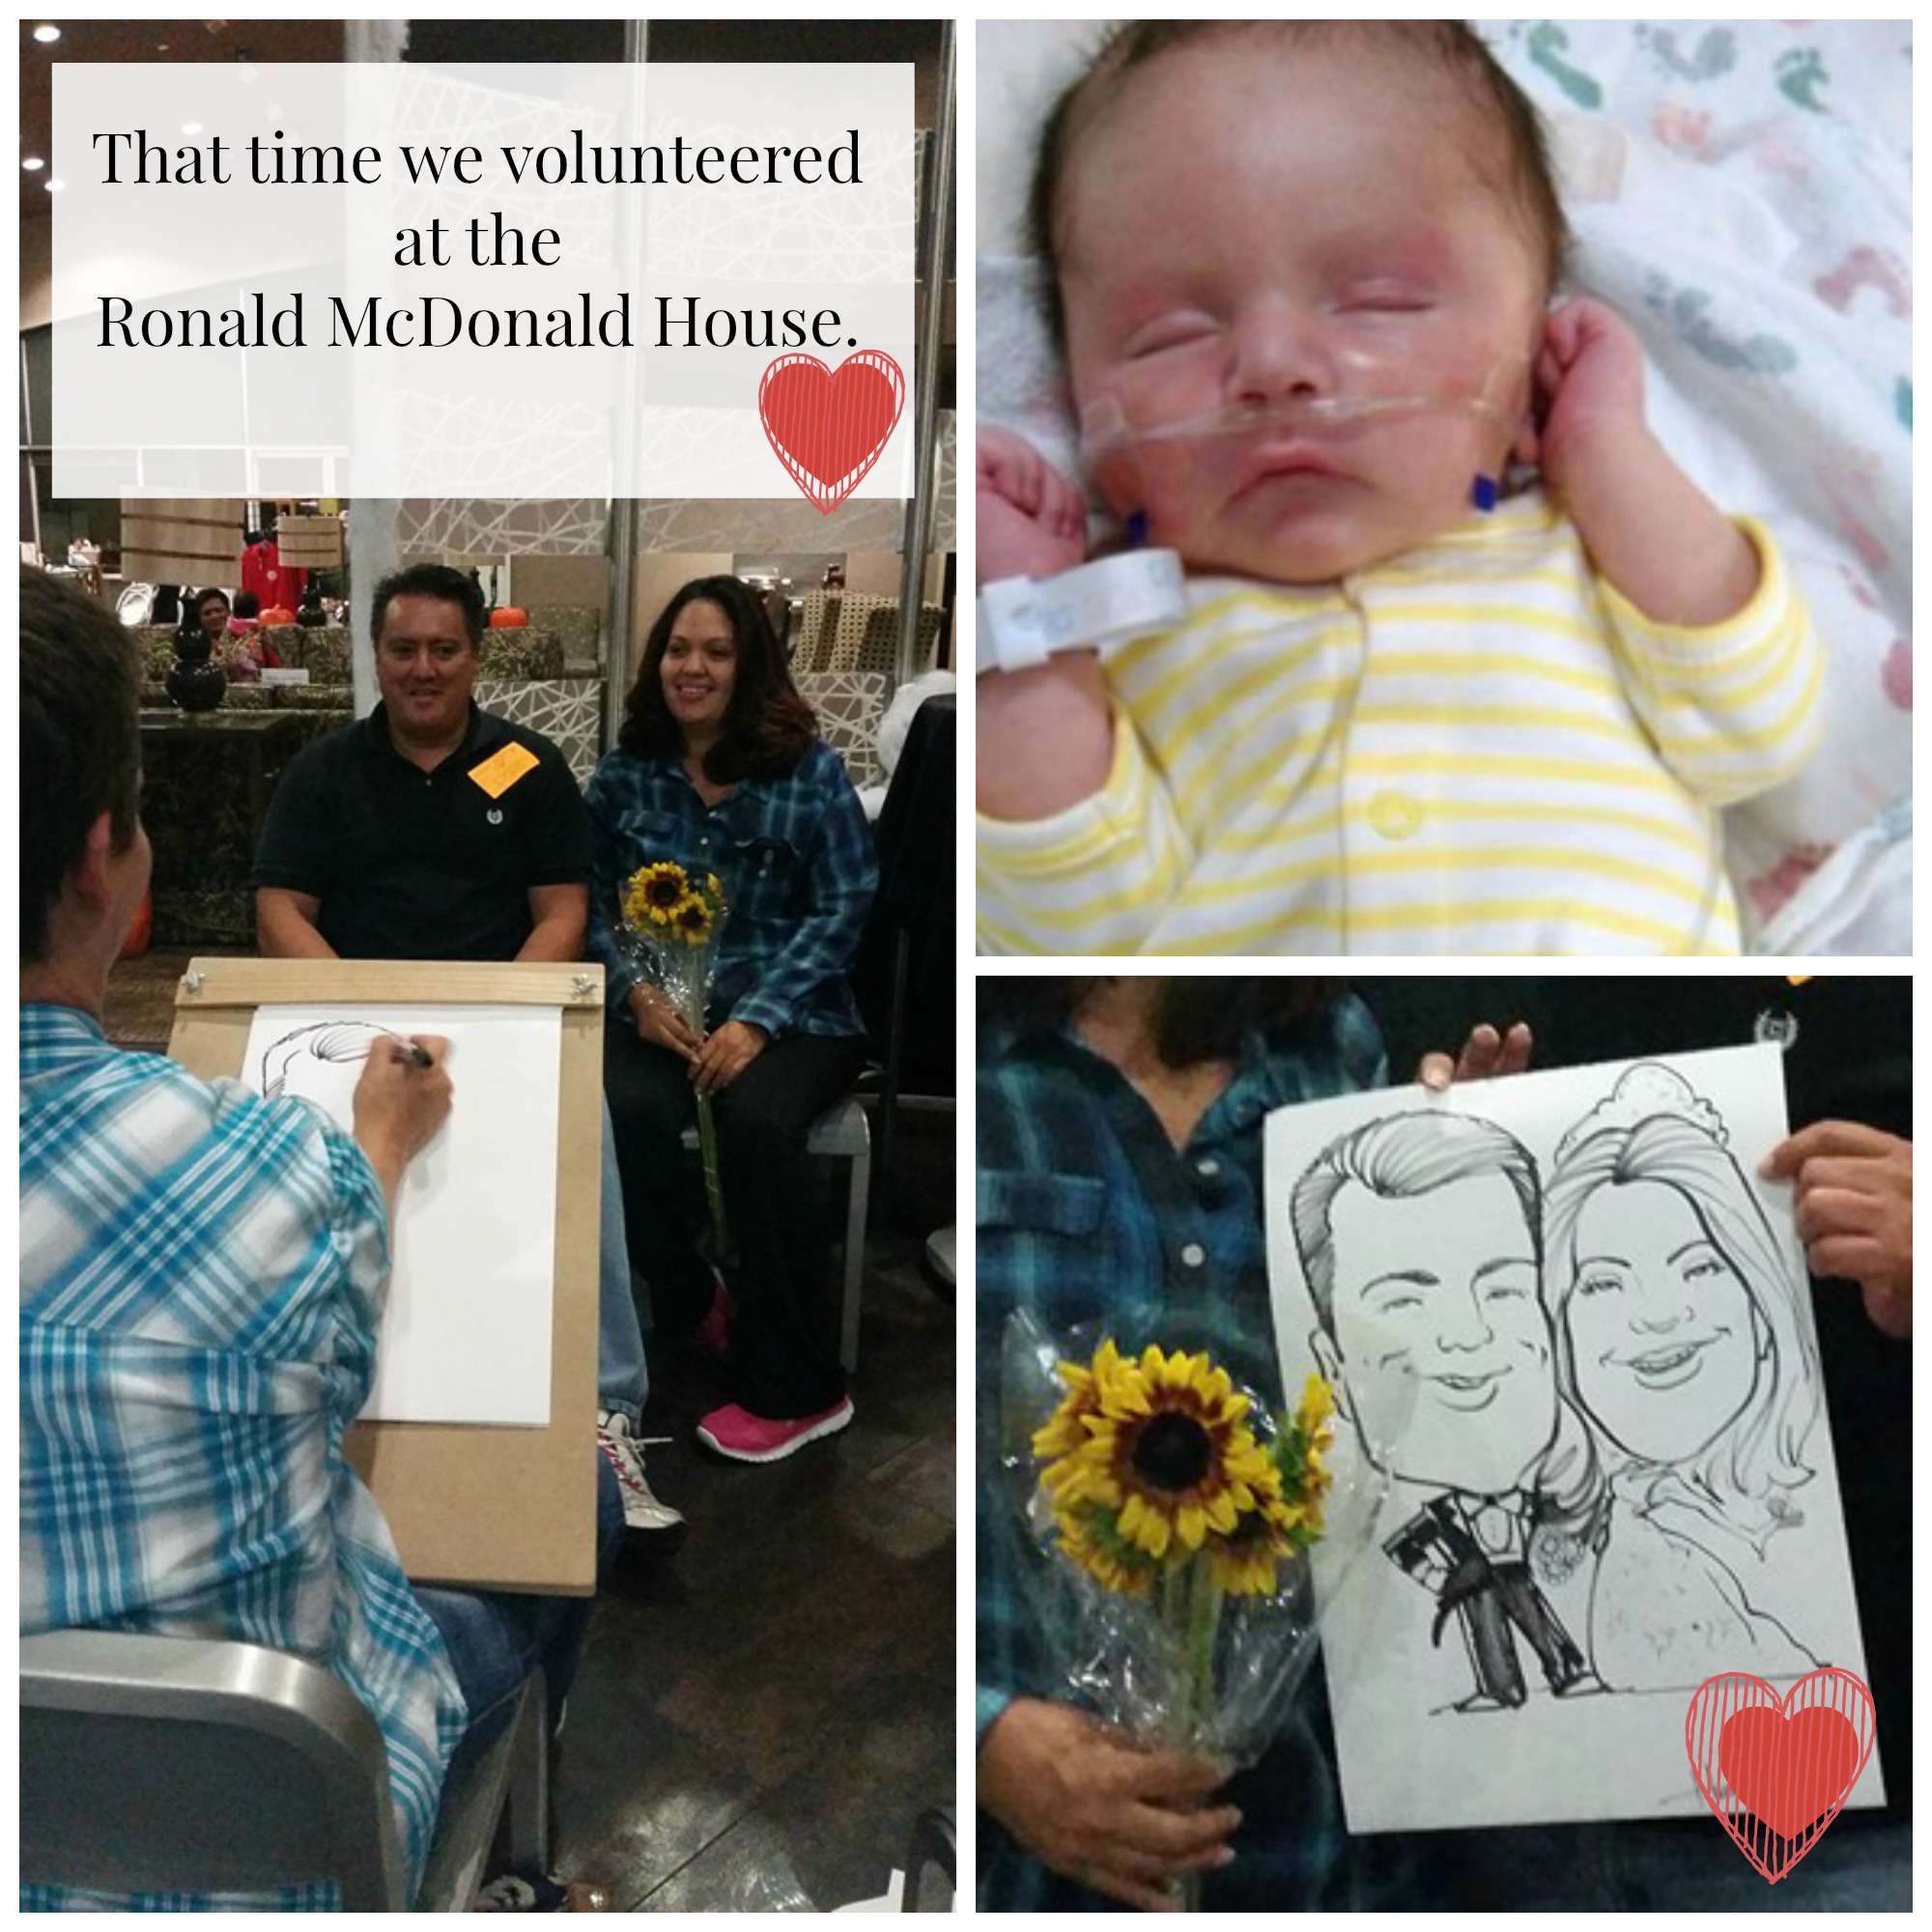 That Time We Volunteered at Ronald McDonald House